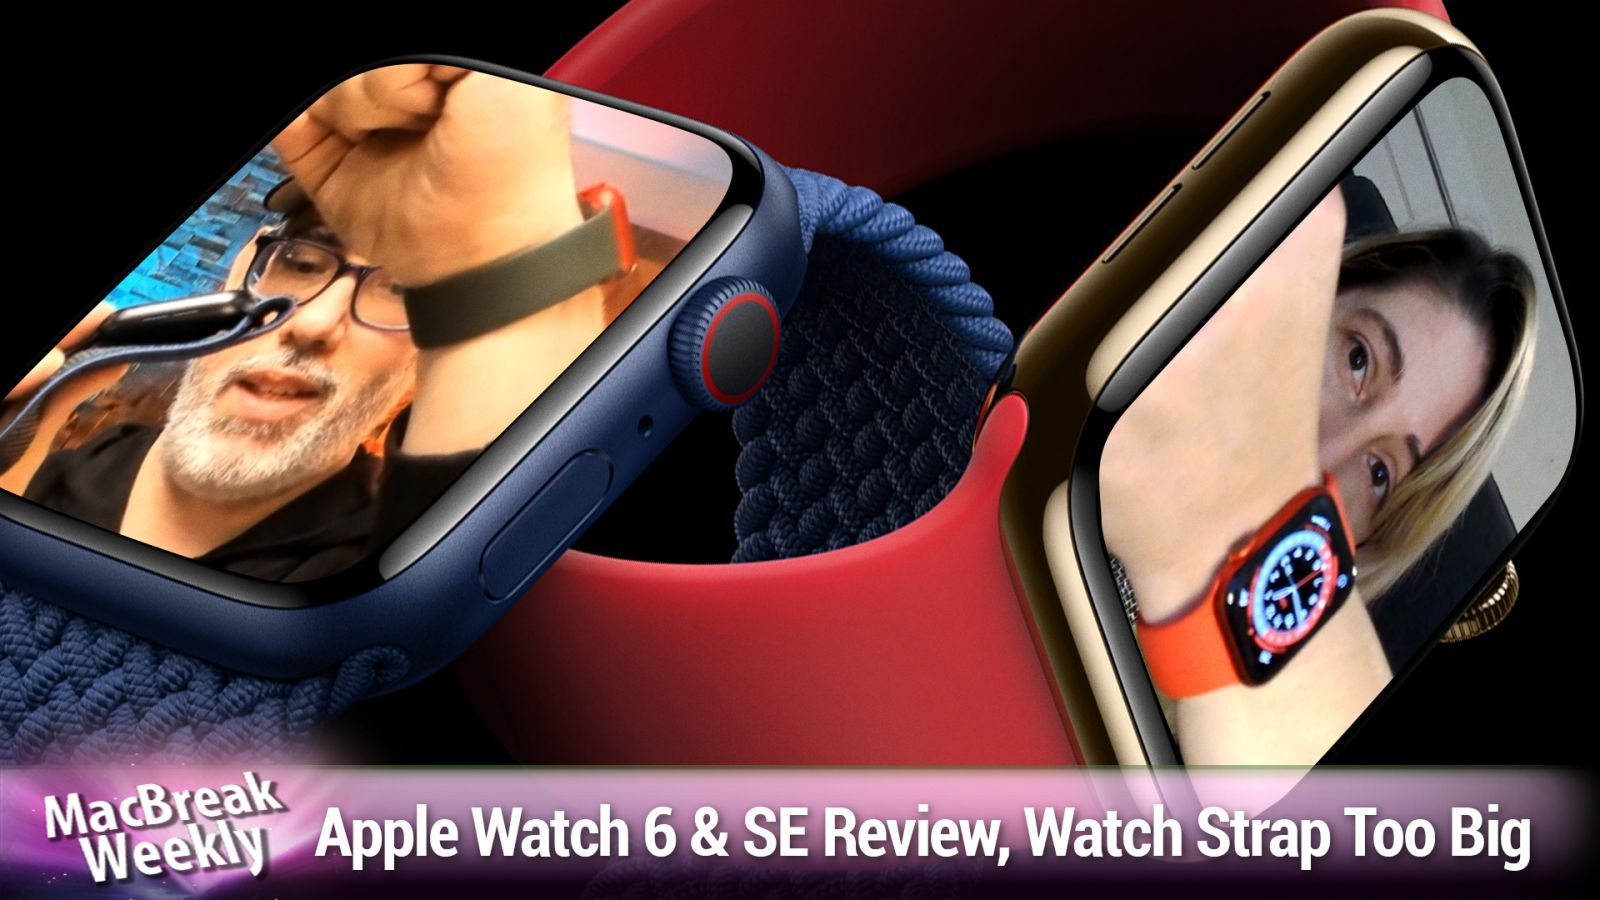 Apple Watch 6&SE Reviews, Watch Strap is Too Big